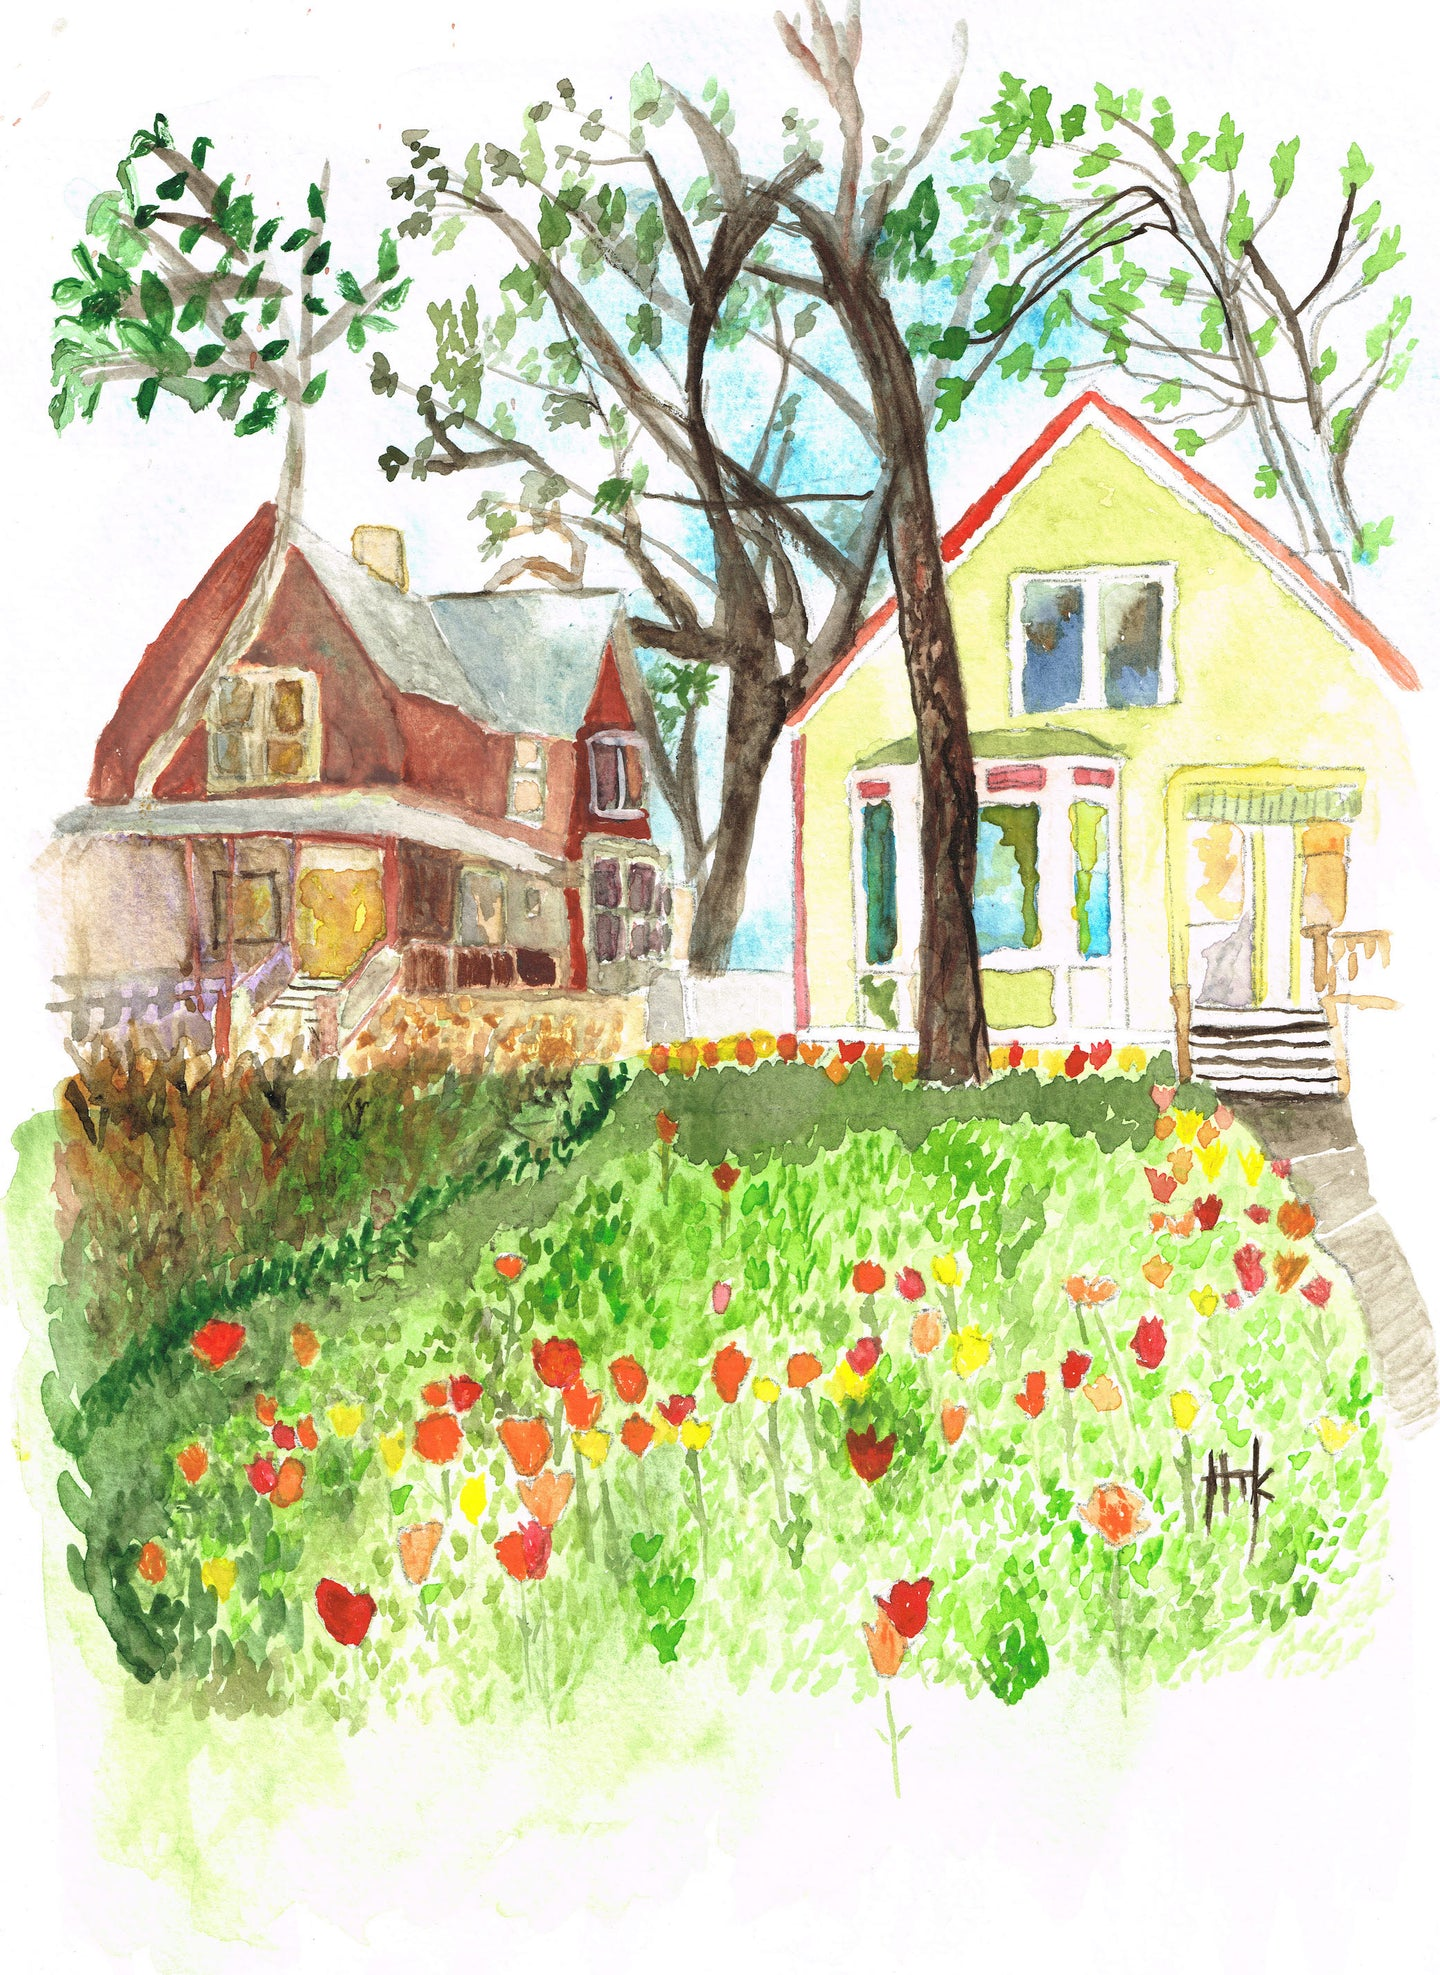 OAK PARK SPRINGTIME HOMES